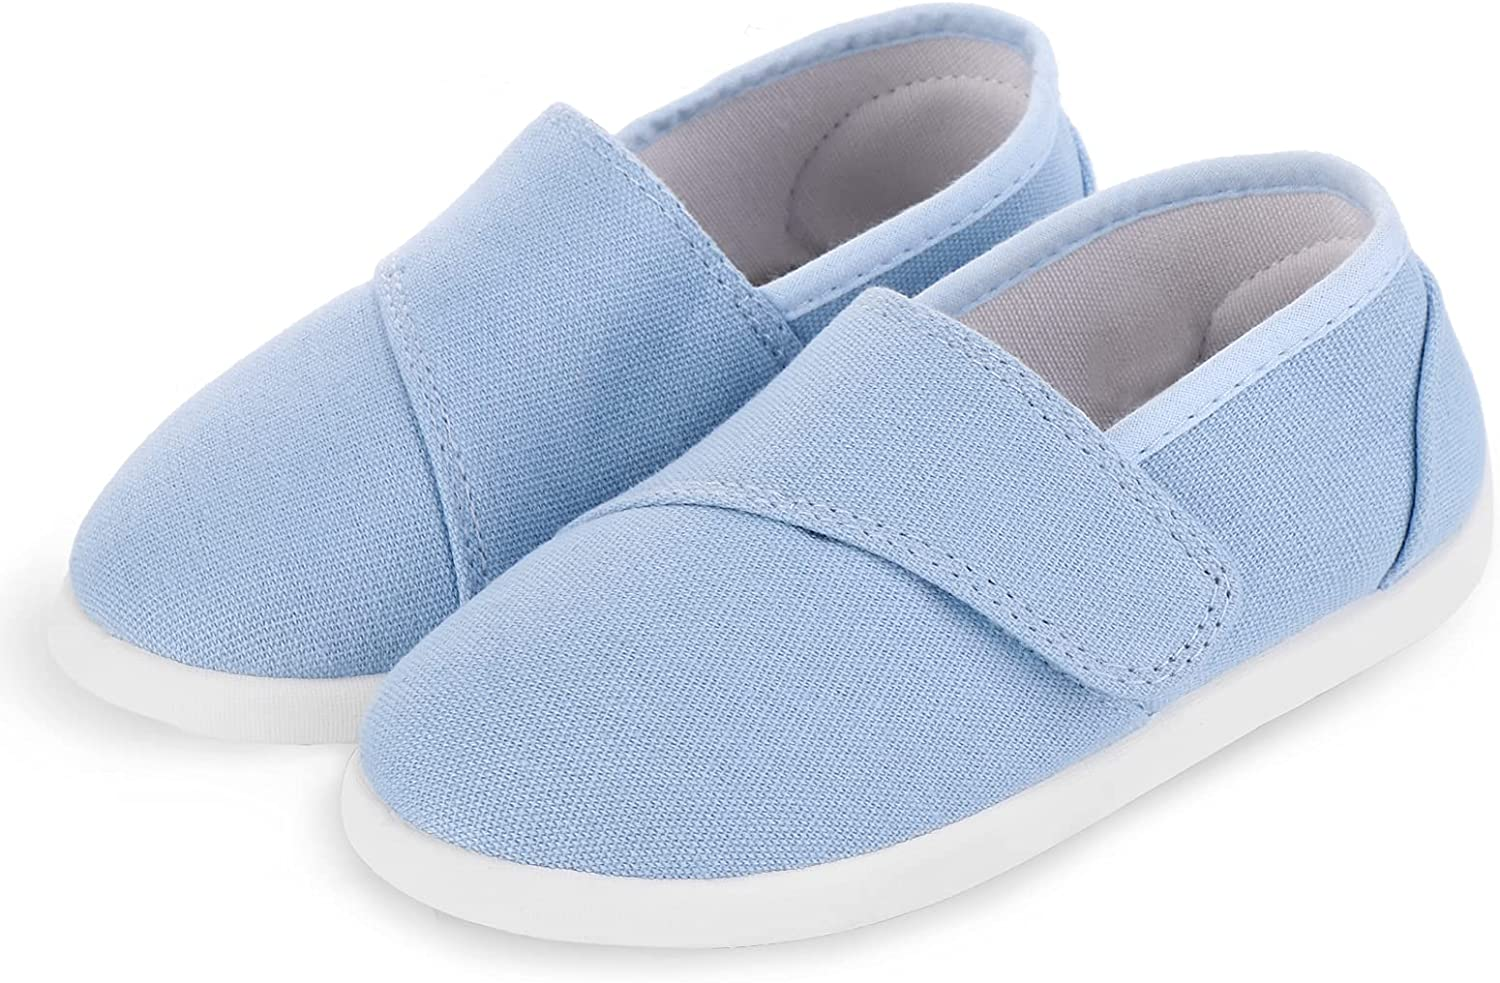 New Tampa Mall life JOSINY Toddler Girls Sneakers - Casual Slip a Kids On Shoes Soft